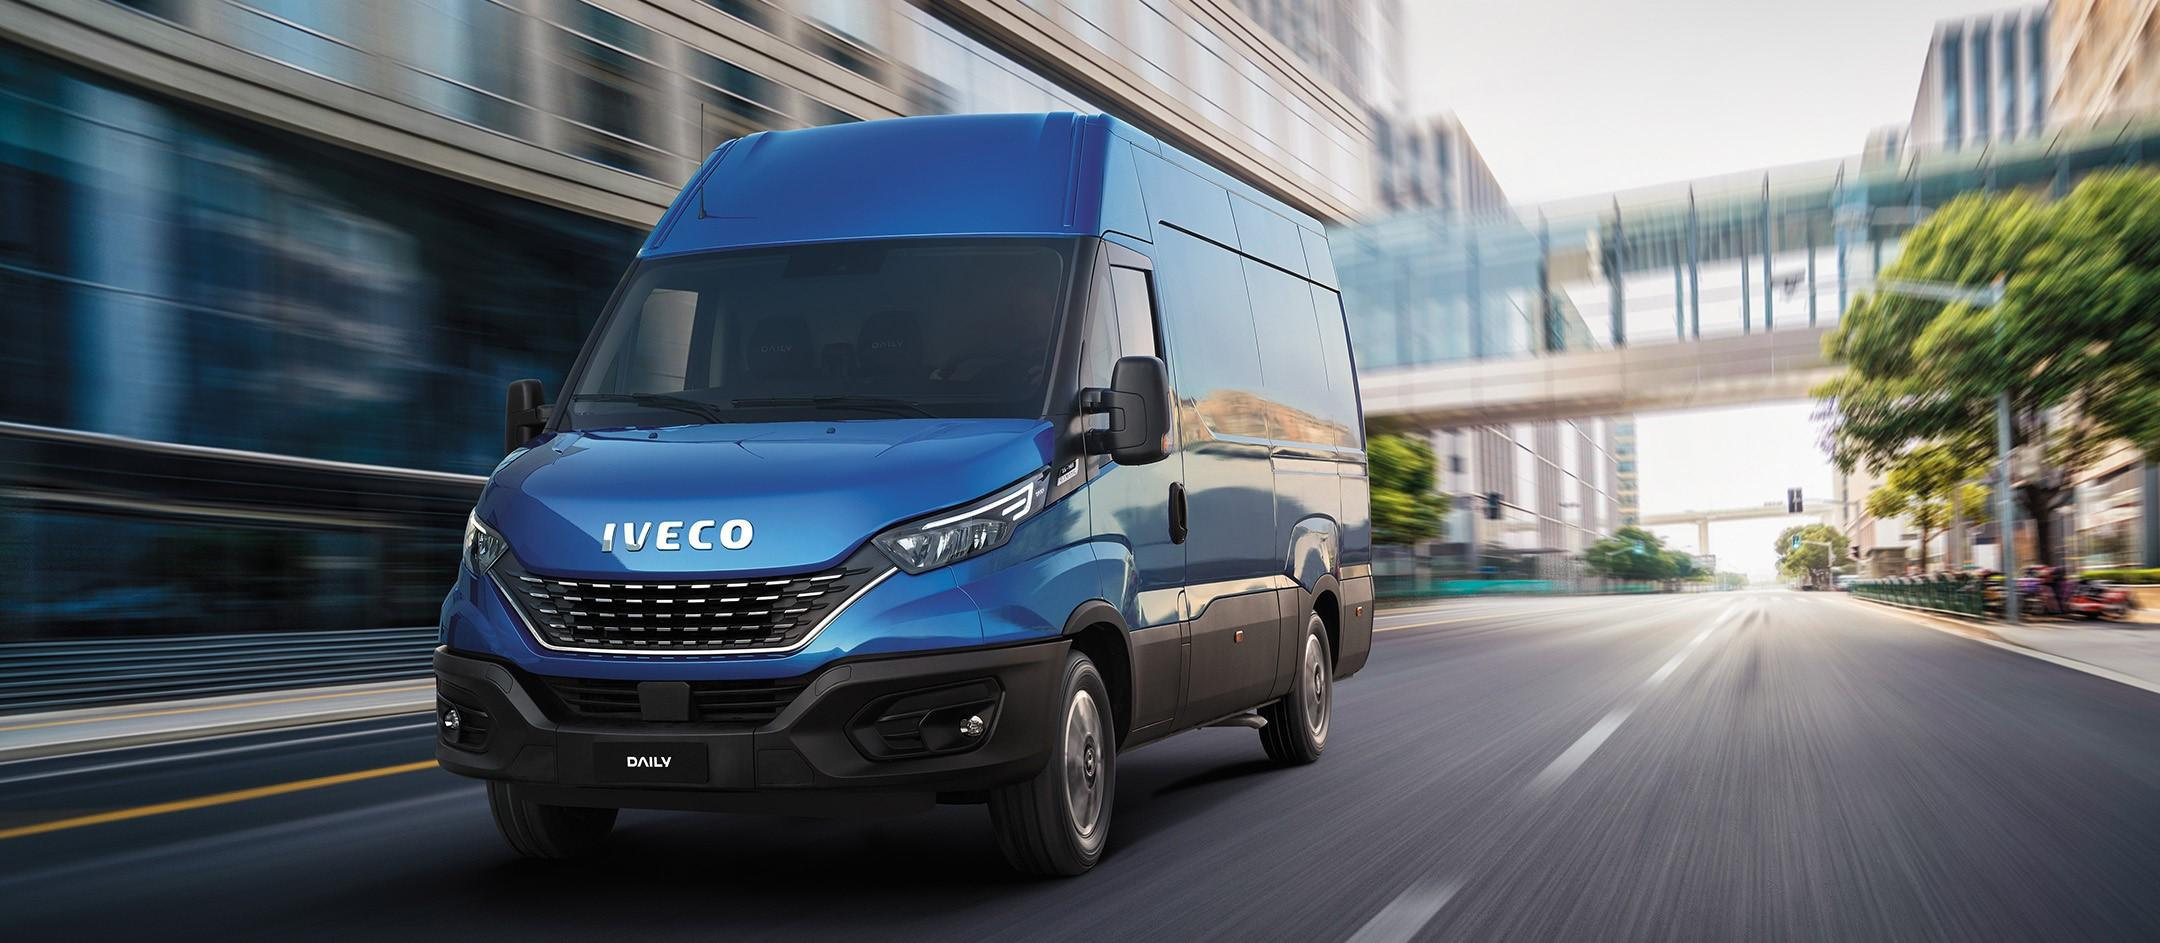 IVECO Daily named Light Truck of the Year 2021